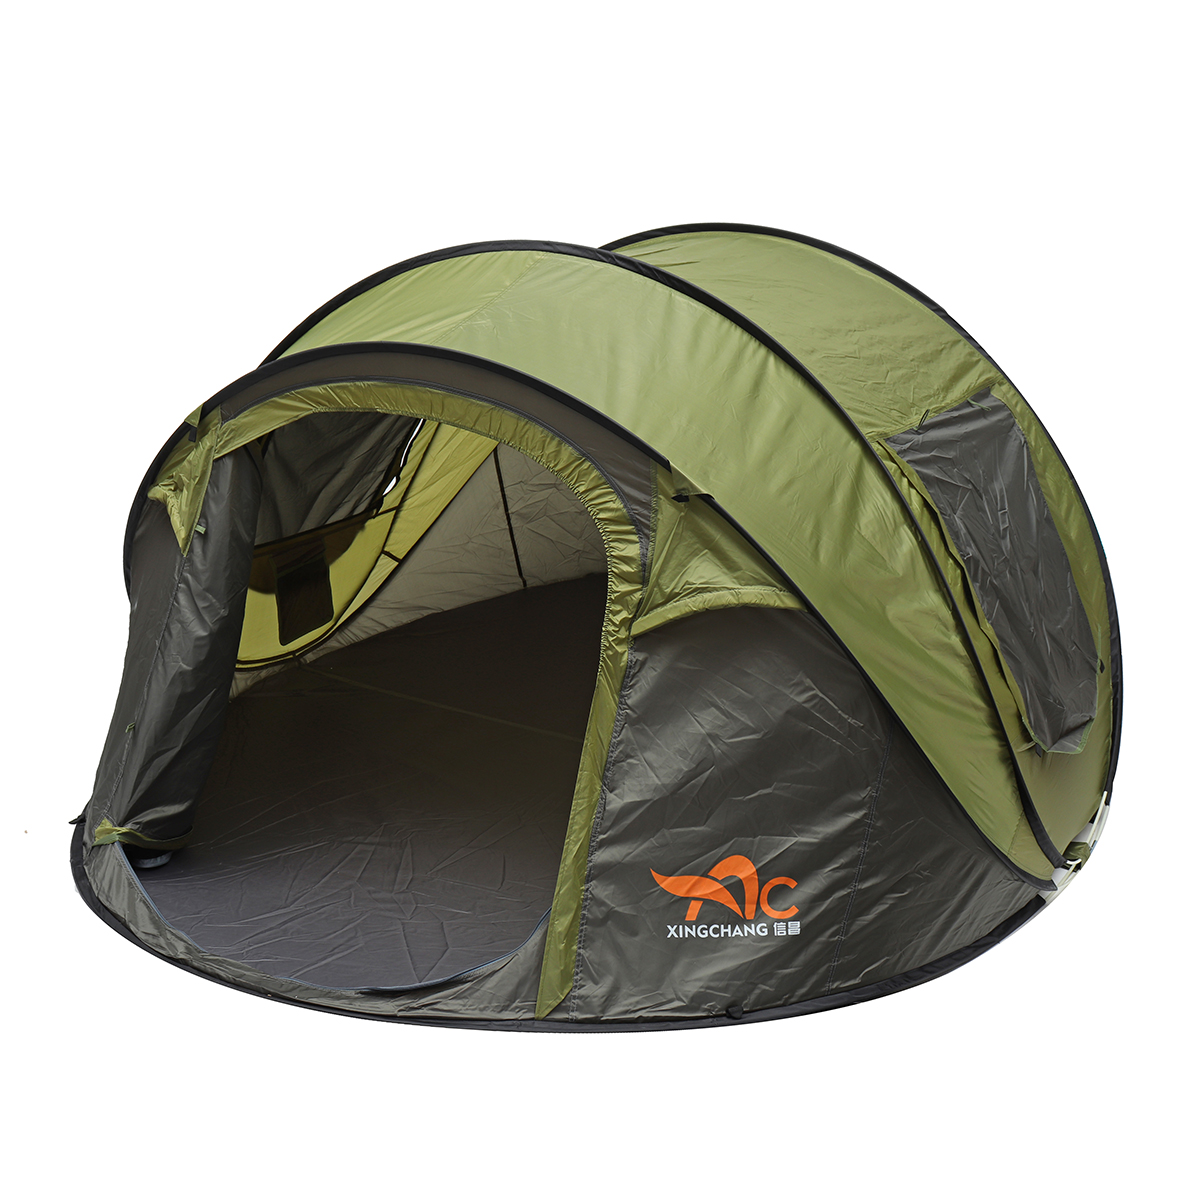 5-8 Person Automatic Camping Tent with Sunshade Canopy